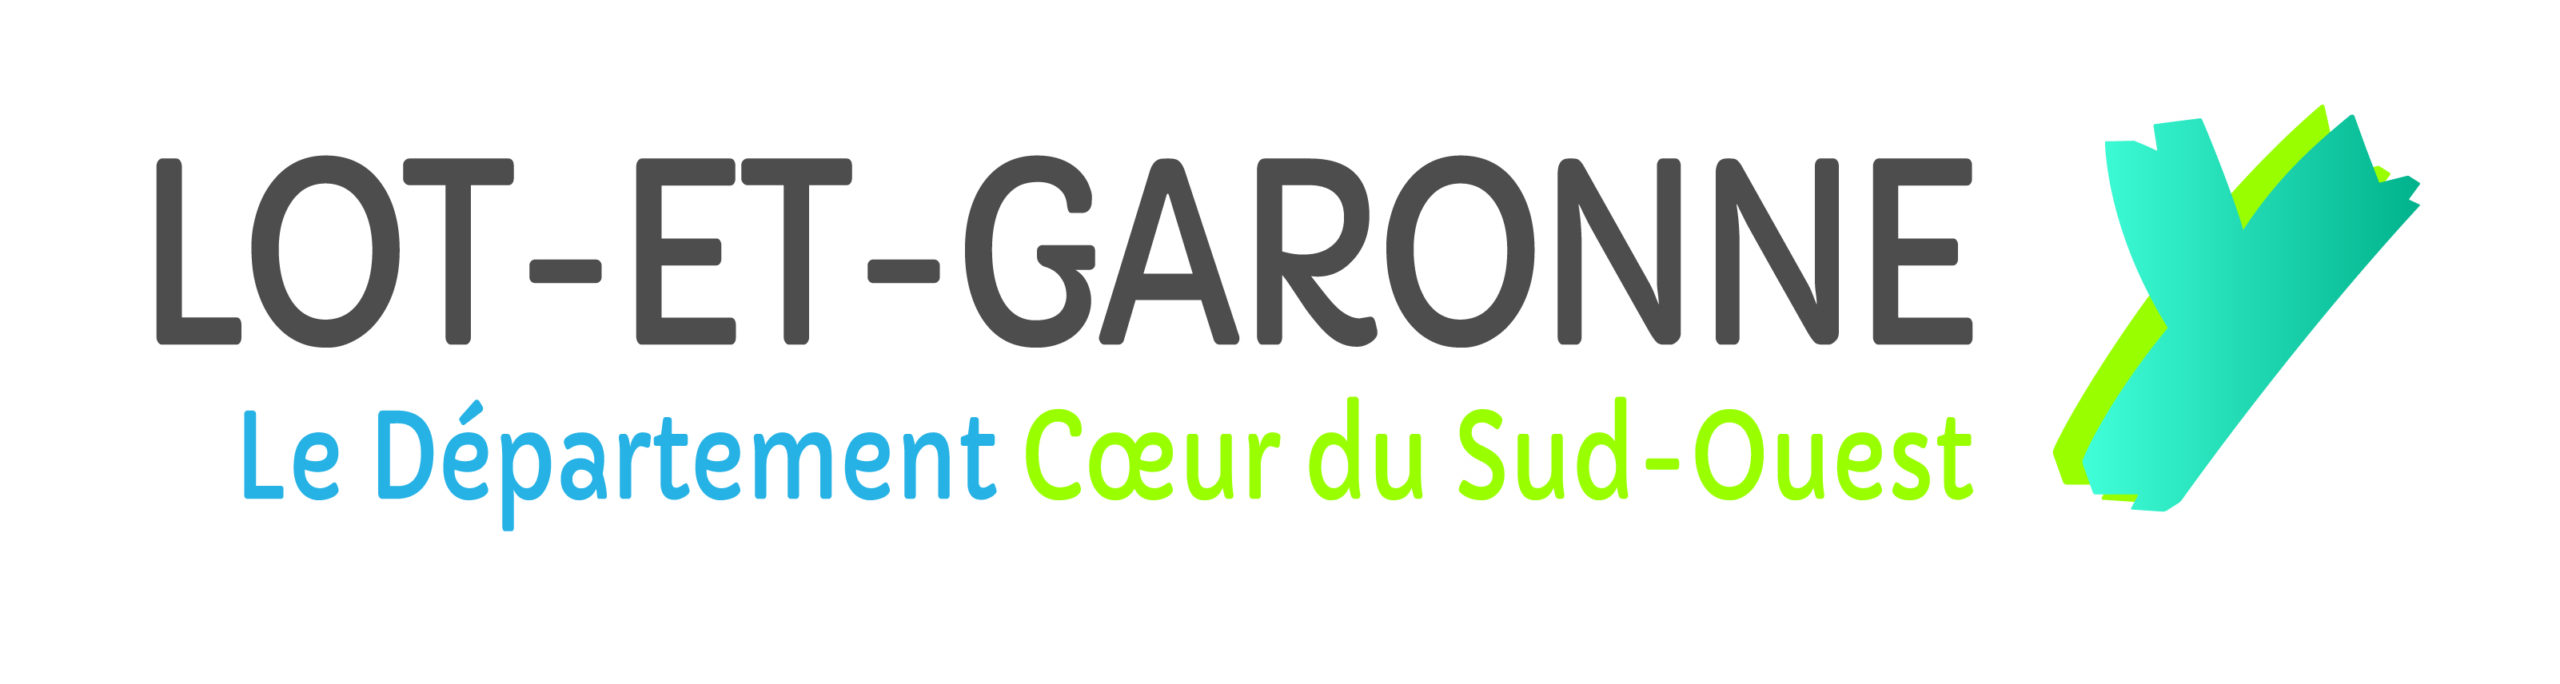 LOGO_departement_lot_garonne